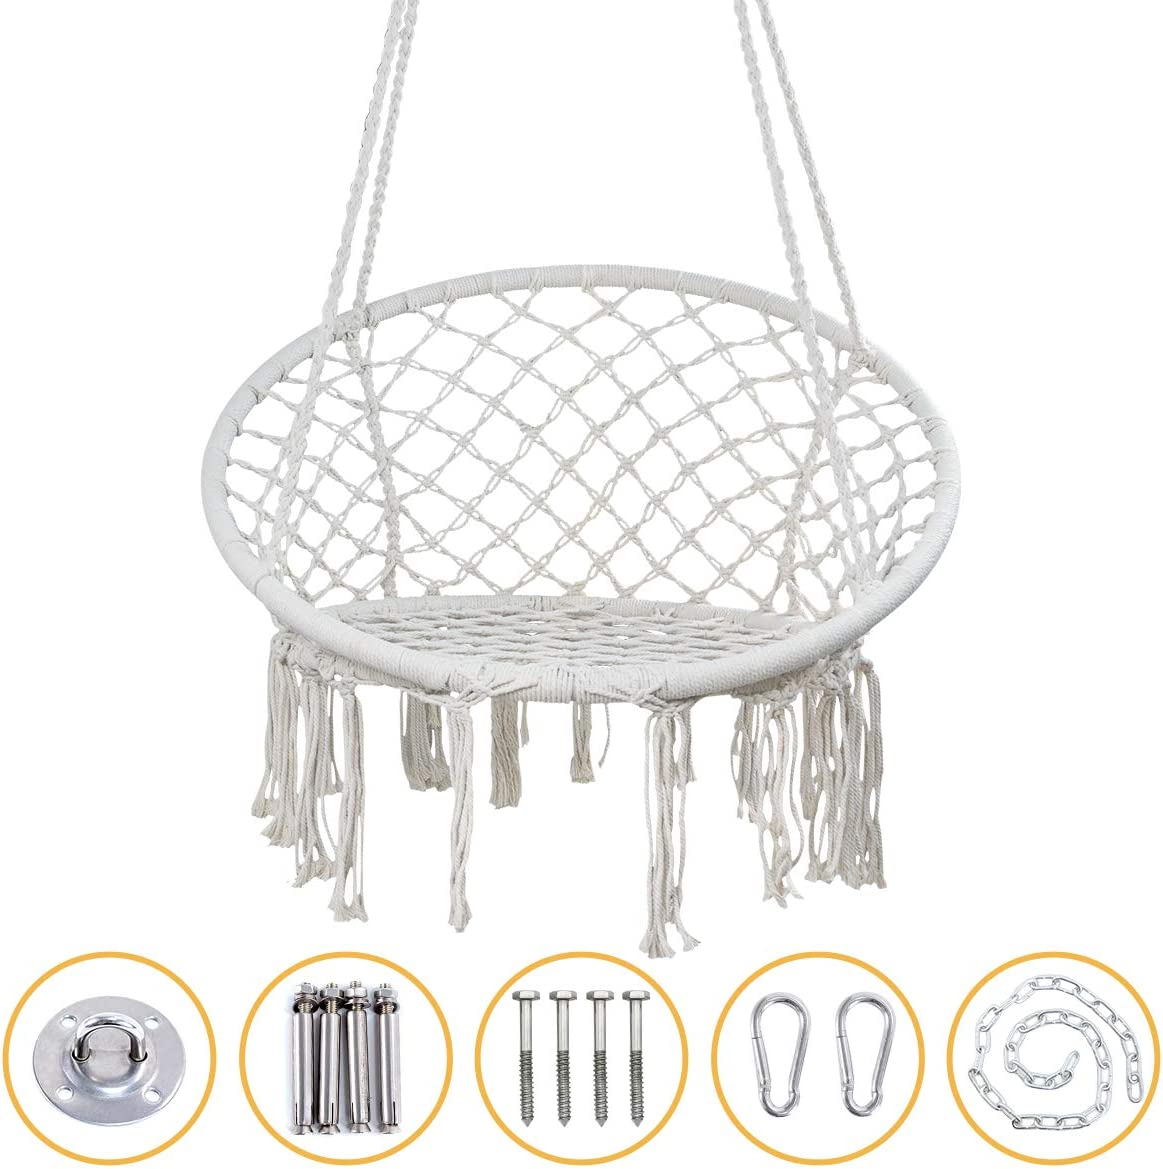 YRYM HT Macrame Swing Hammock Chair - Macrame Hanging Chair with Durable Hanging Hardware Kit, Indoor & Outdoor Macrame Swing Chairs for Bedrooms, Patio, Porch, Deck, Yard, Garden